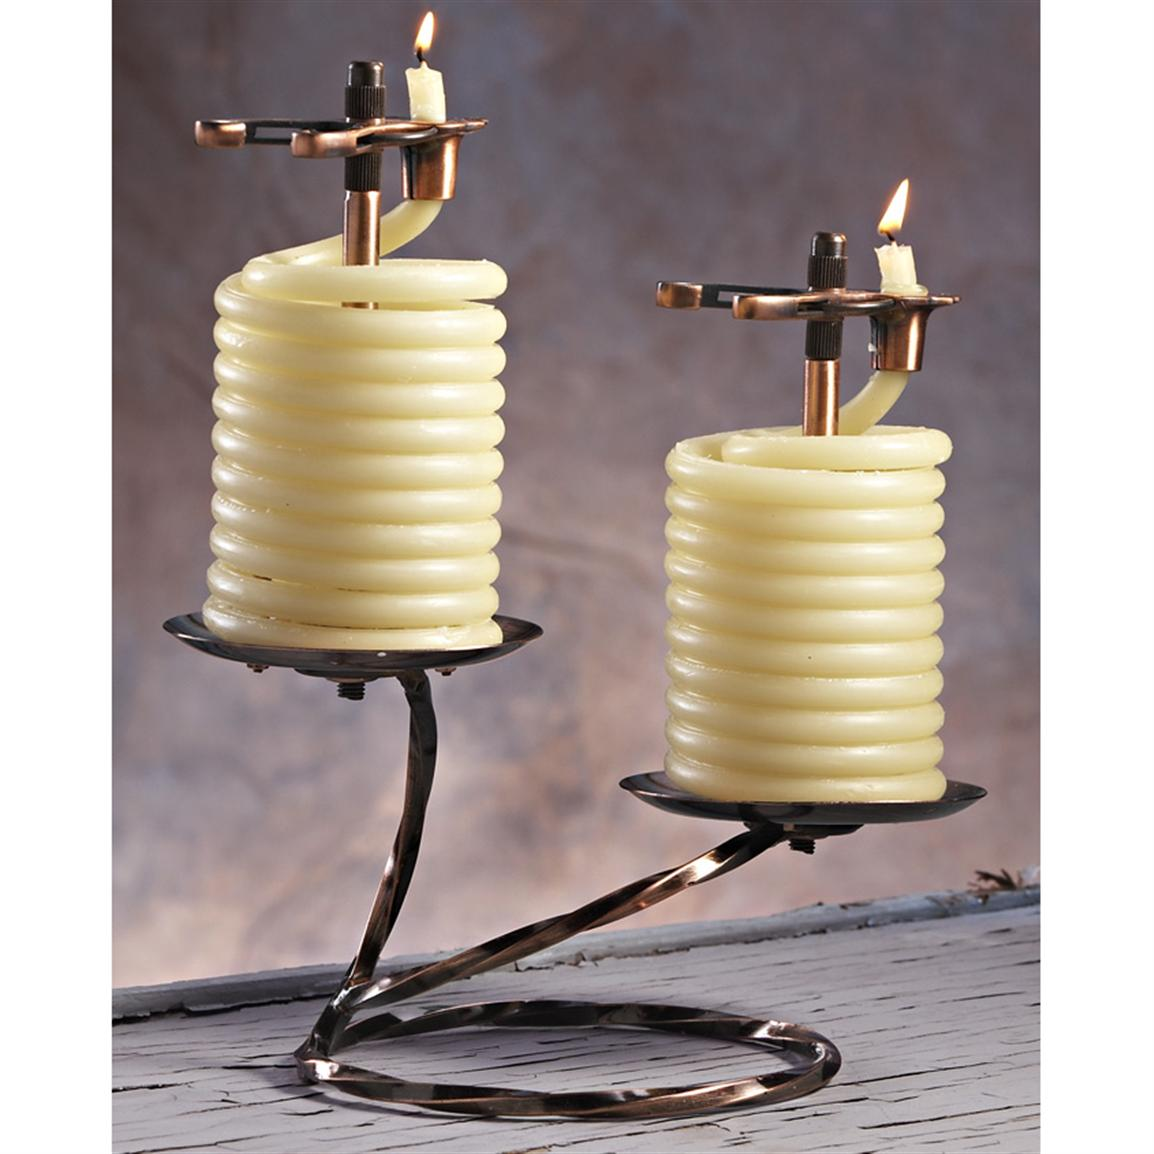 Two 36-hour Candle-by-the-Hour Beeswax Candles